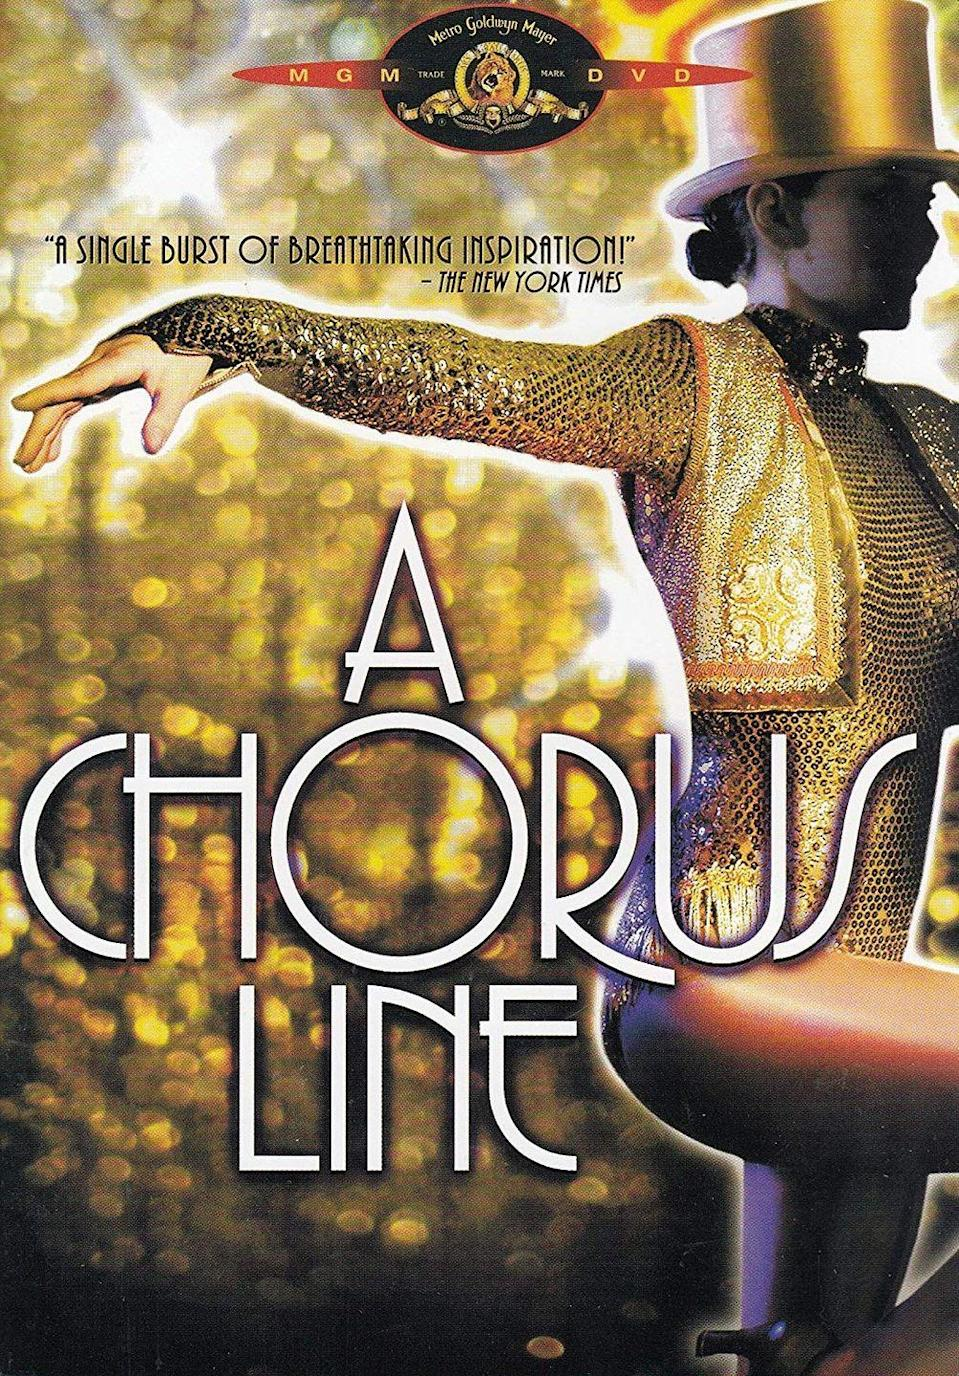 """<p>Musicals about life in show business are a dime a dozen, but this one is a singular sensation. (Sorry, had to do it!) The story explores the struggles of dancers during the audition process. It's a must-see for anyone looking to get their feet wet in the world of movie musicals.</p><p><a class=""""link rapid-noclick-resp"""" href=""""https://www.amazon.com/Chorus-Line-Michael-Blevins/dp/B002XZOZQA/ref=sr_1_1?tag=syn-yahoo-20&ascsubtag=%5Bartid%7C10072.g.27734413%5Bsrc%7Cyahoo-us"""" rel=""""nofollow noopener"""" target=""""_blank"""" data-ylk=""""slk:WATCH NOW"""">WATCH NOW</a></p>"""